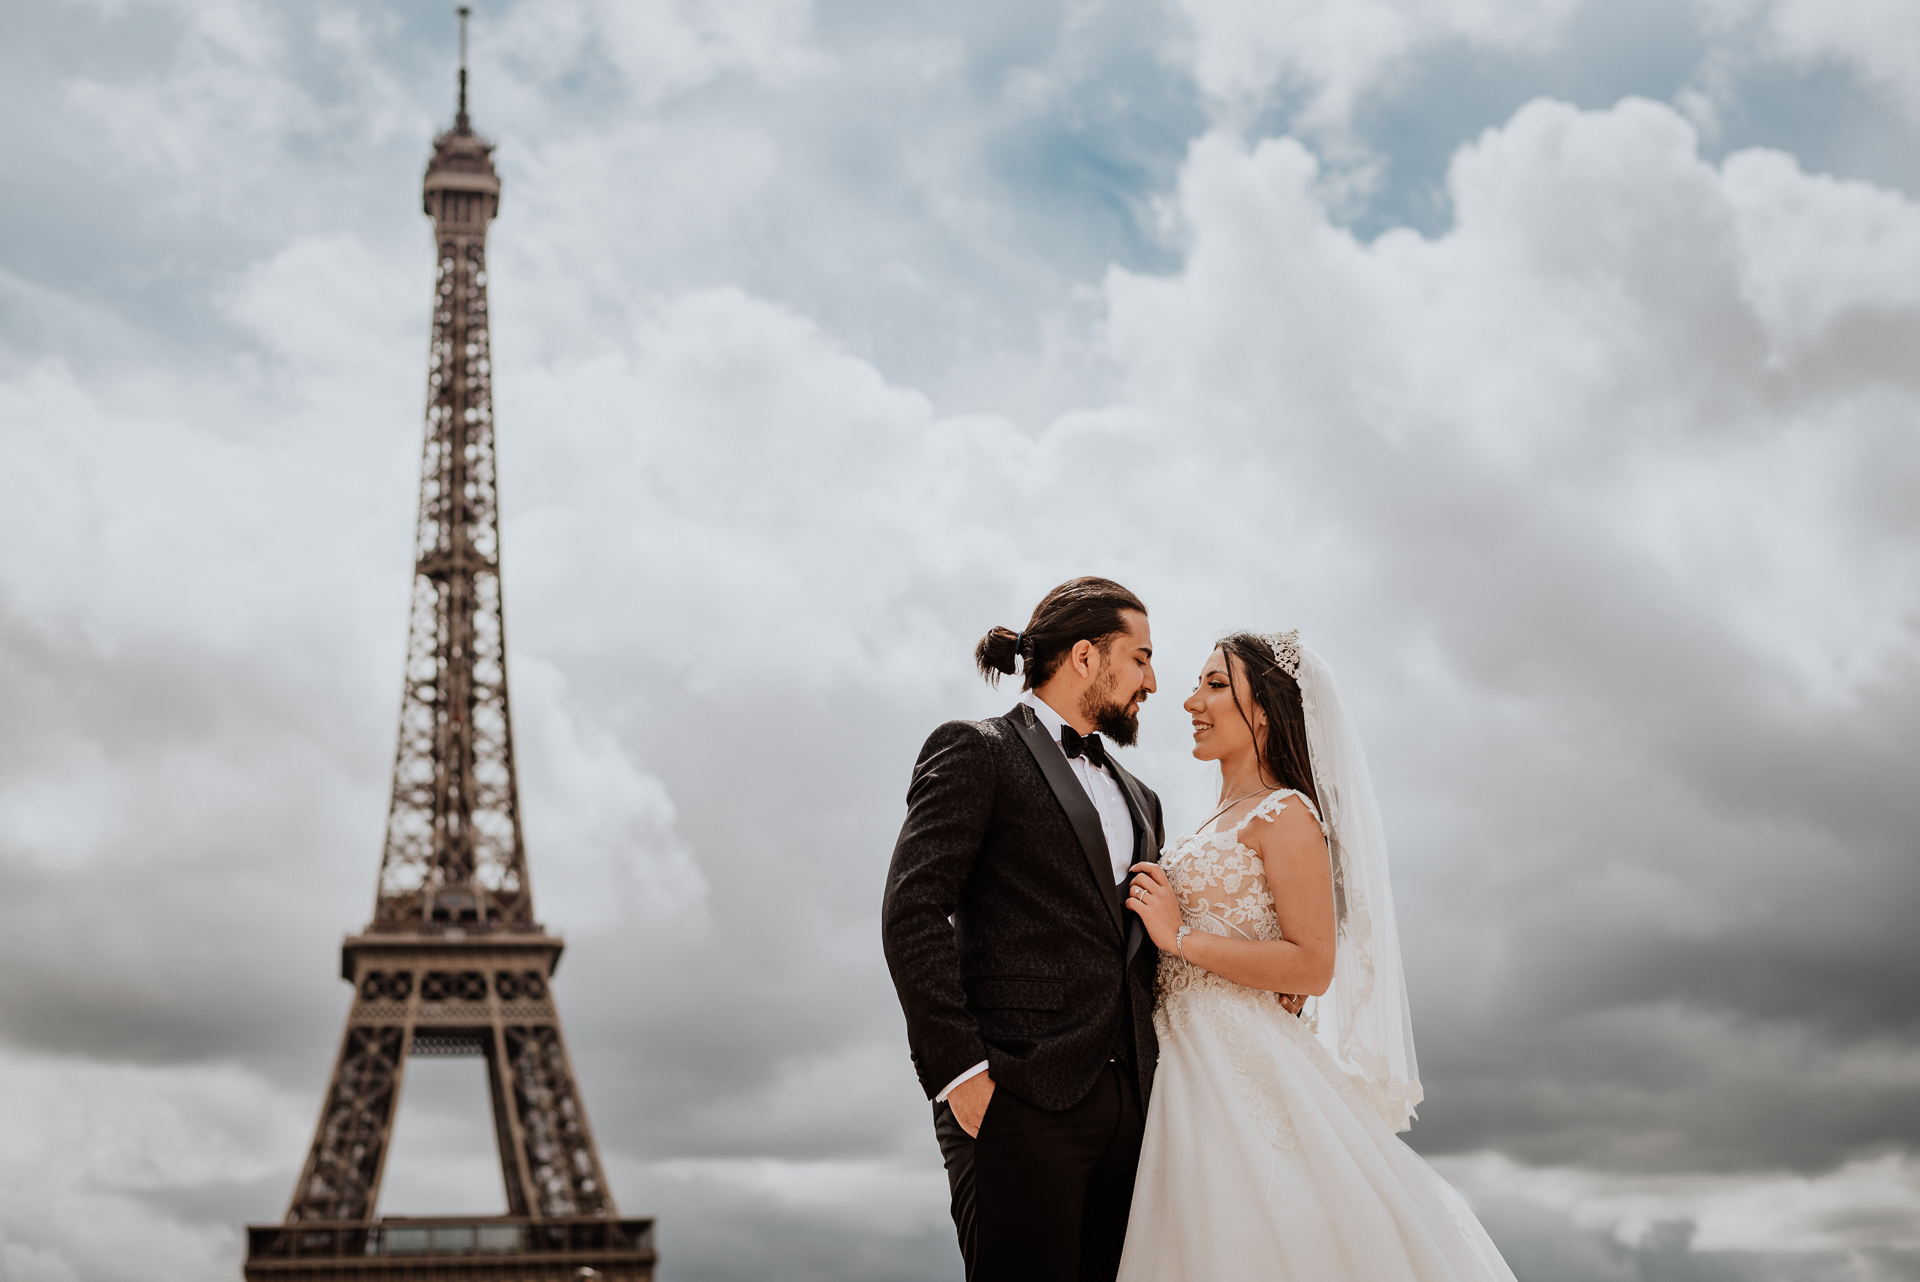 PAris elopement wedding photoshoot